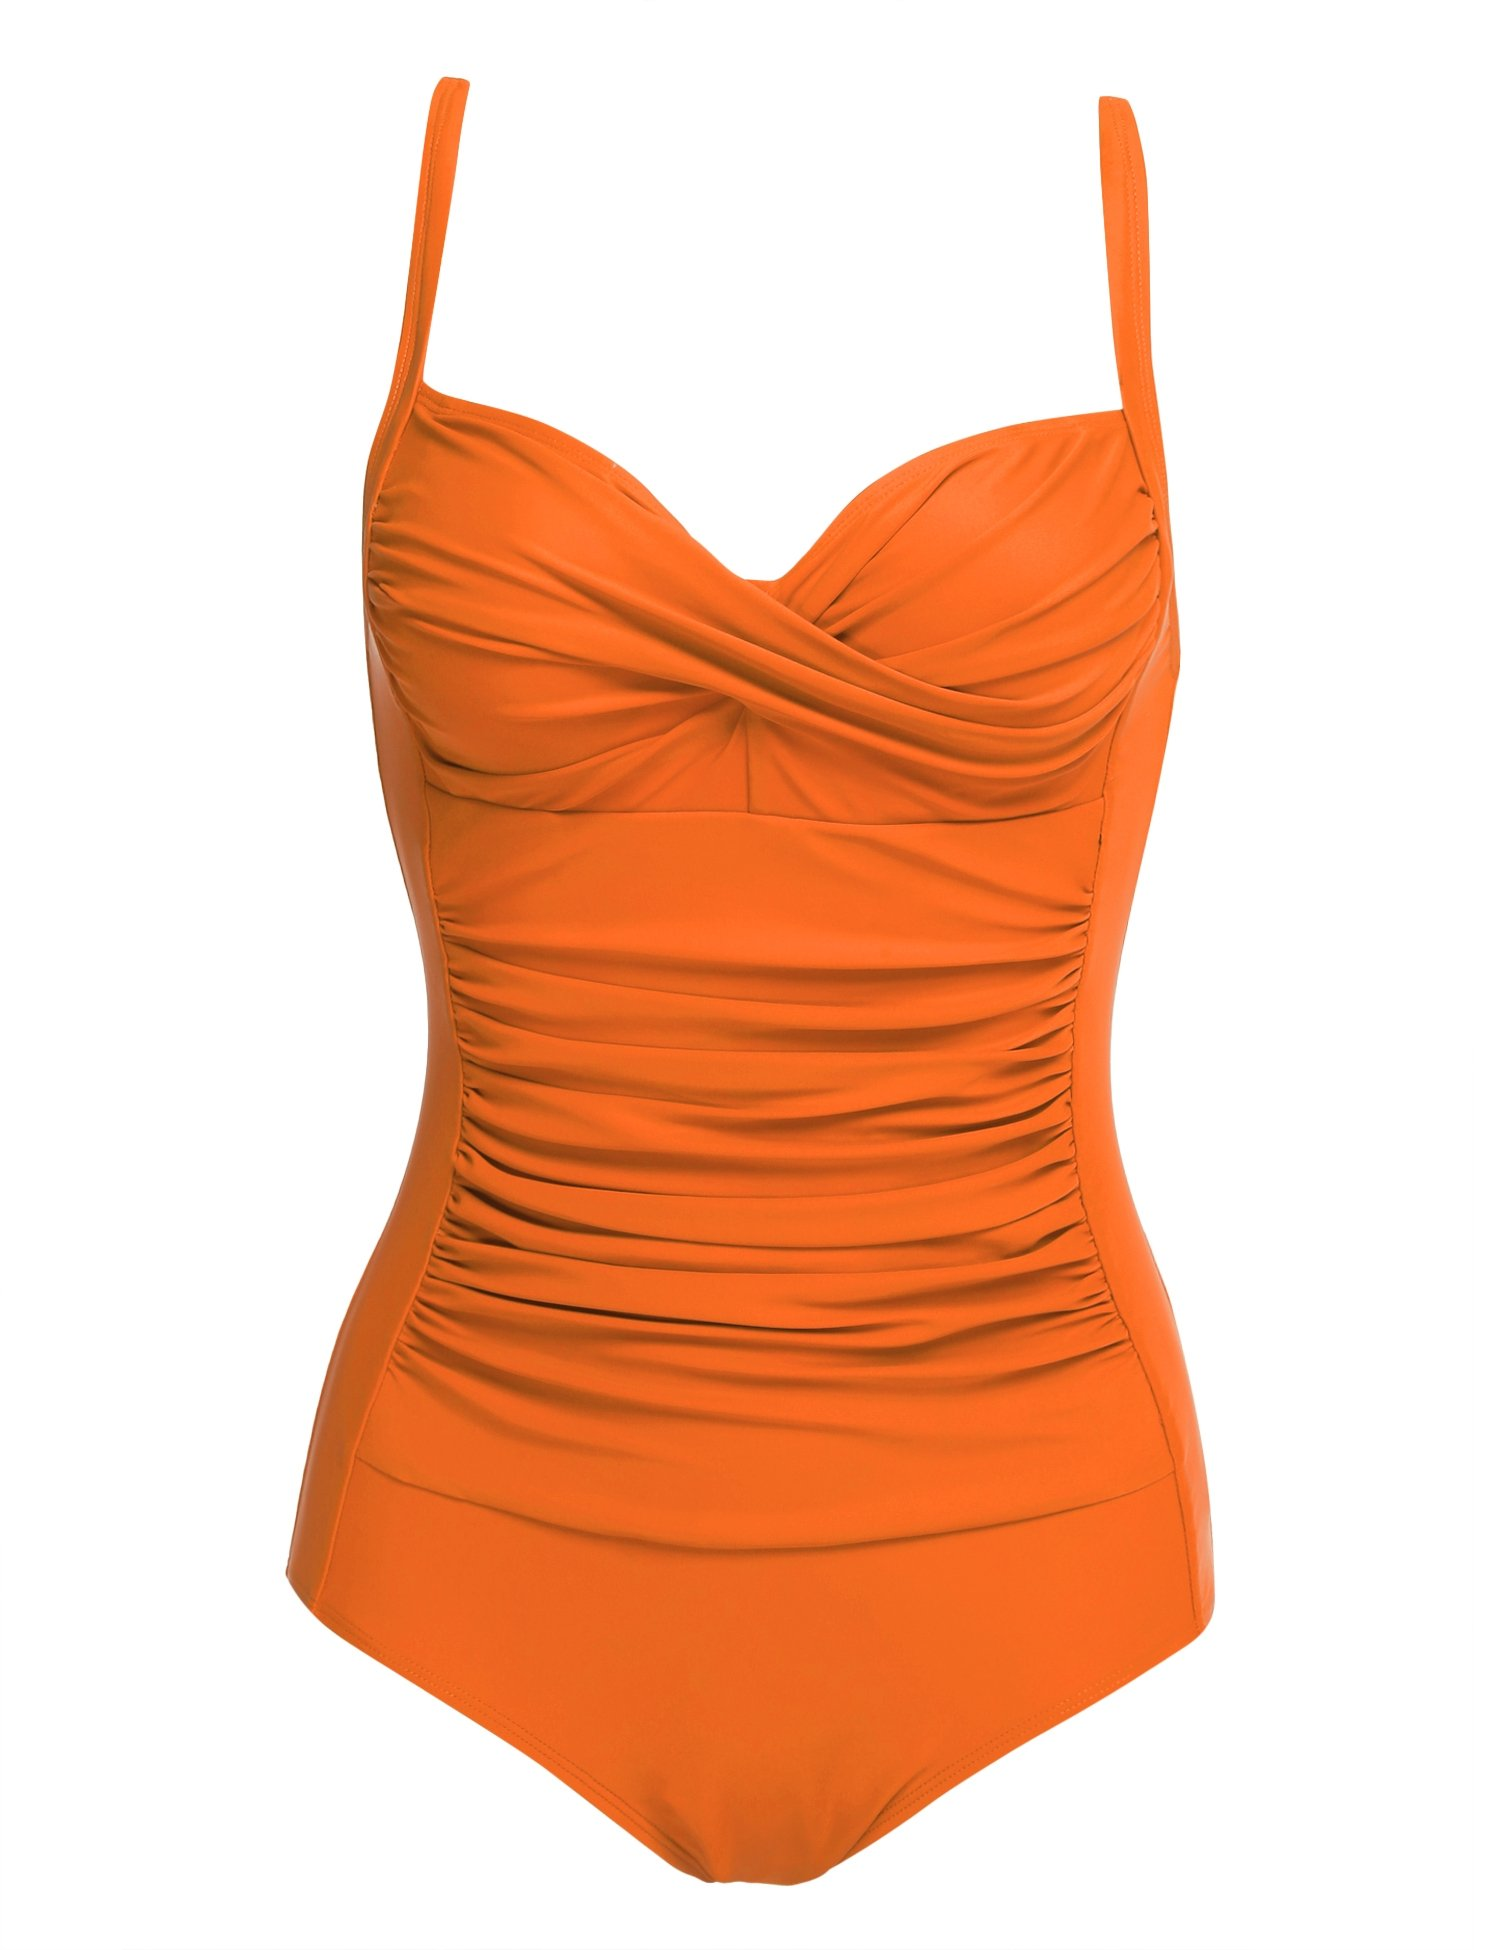 94c7b65d44 Ekouaer 50s Retro Ruched Mansfield Vintage One Piece Pin up Swimwear  Swimsuits,Orange,X-Small